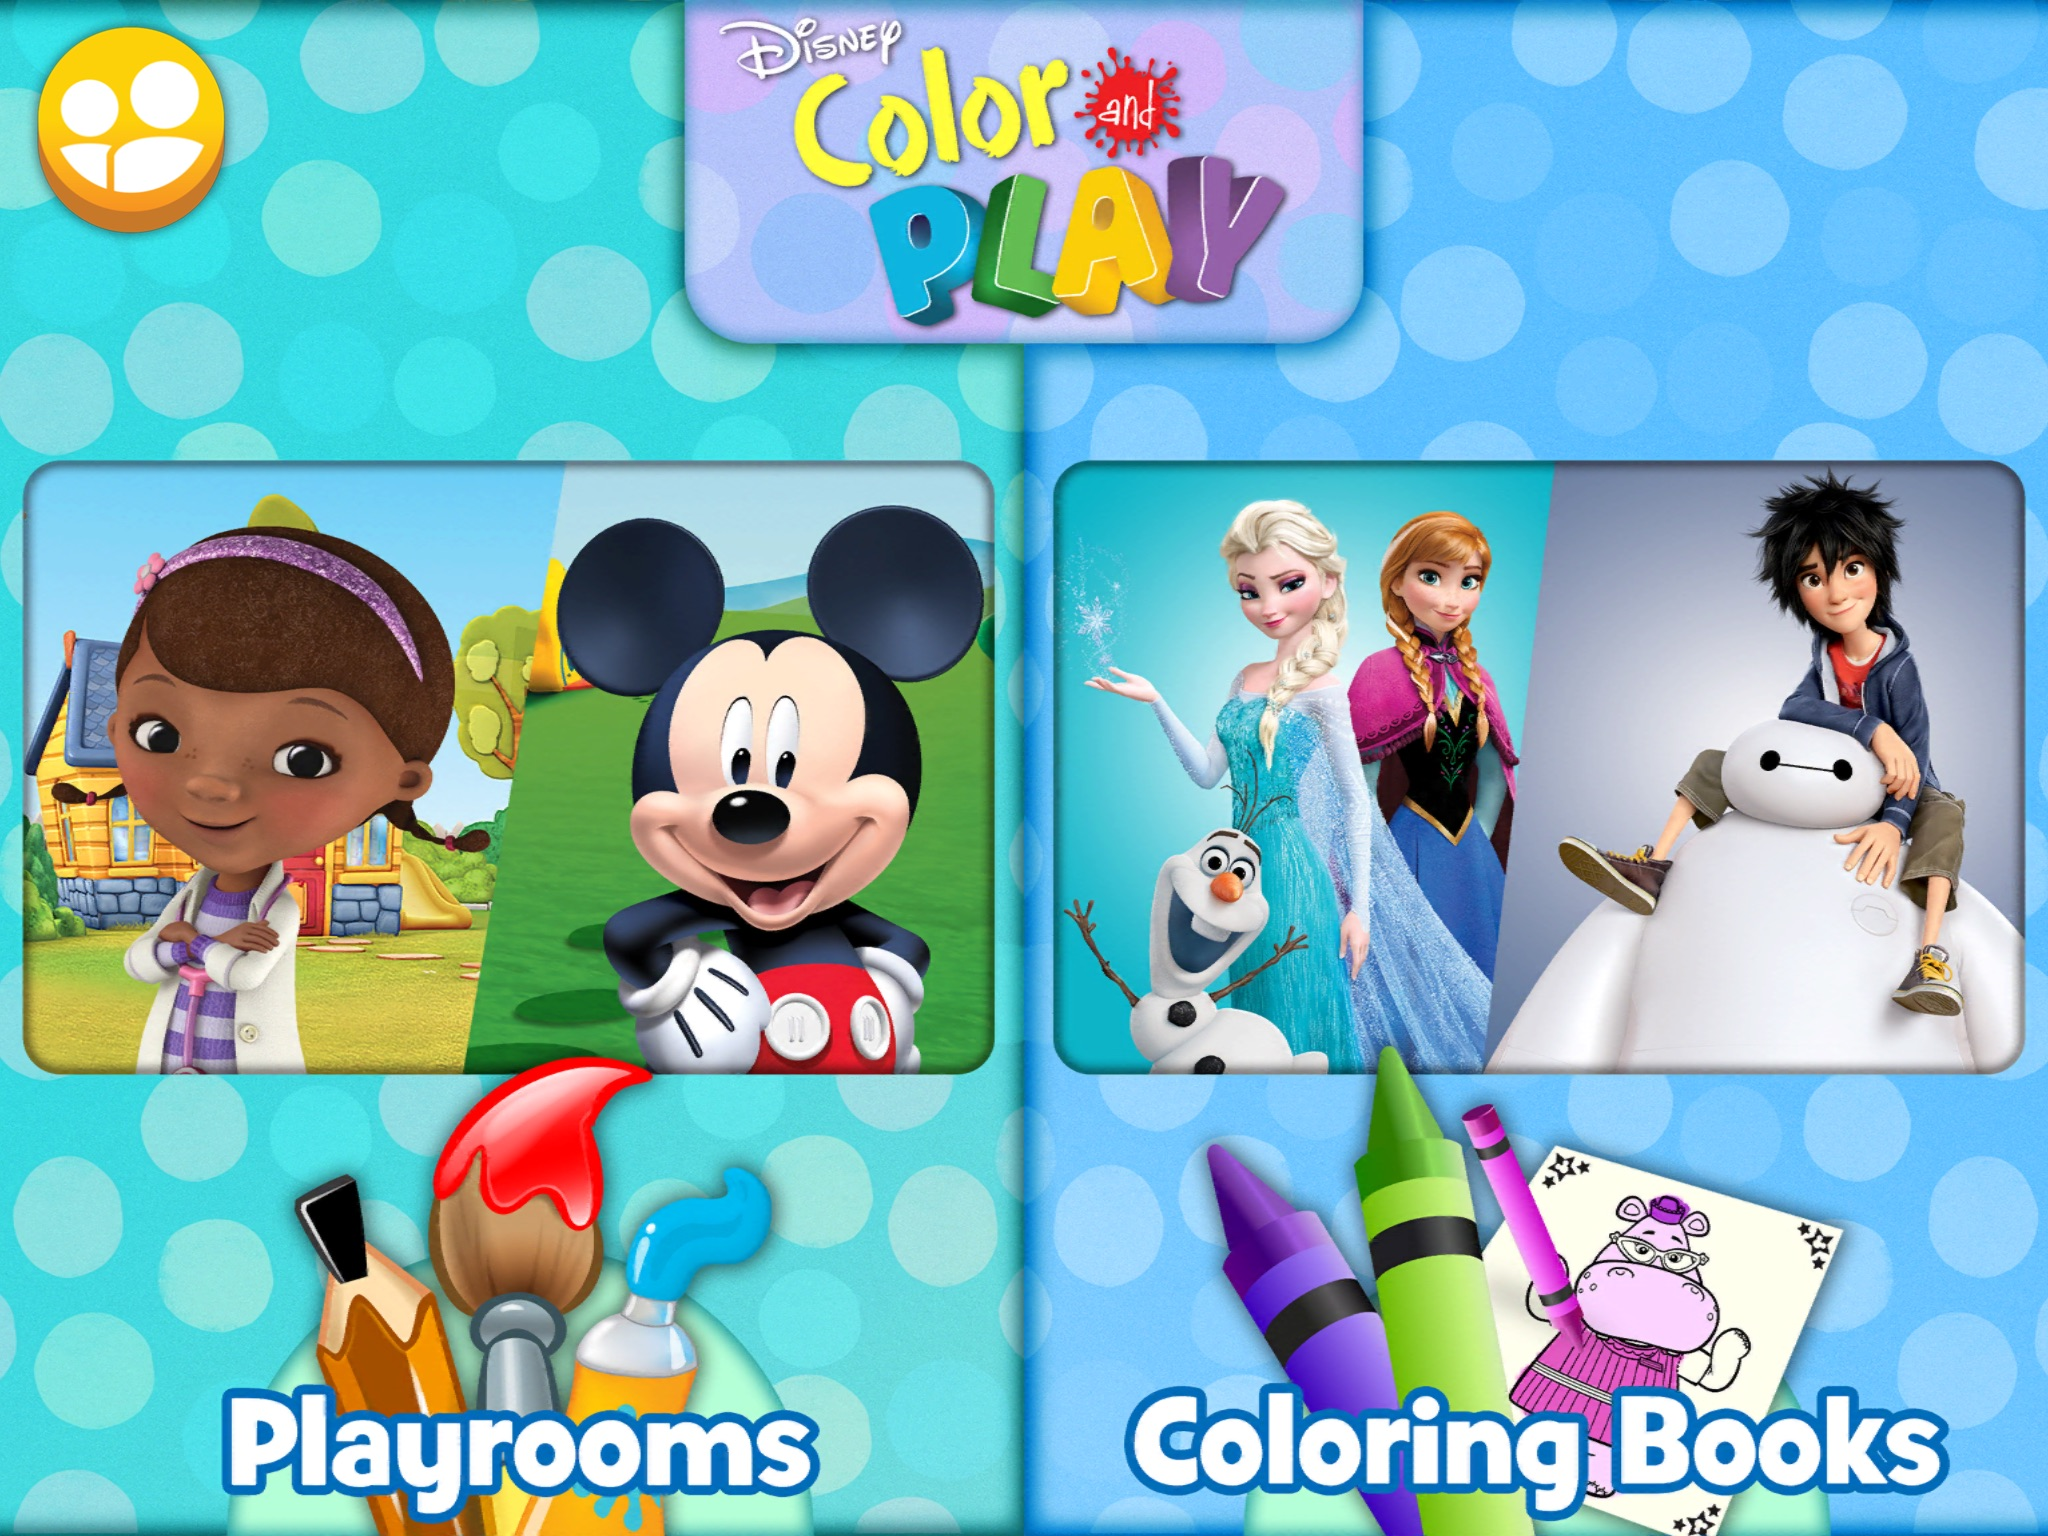 Partnering With Bendon Disney Has Released A New Color And Play App For IOS That Will Have You Look At Coloring Books In Brand Innovative Way